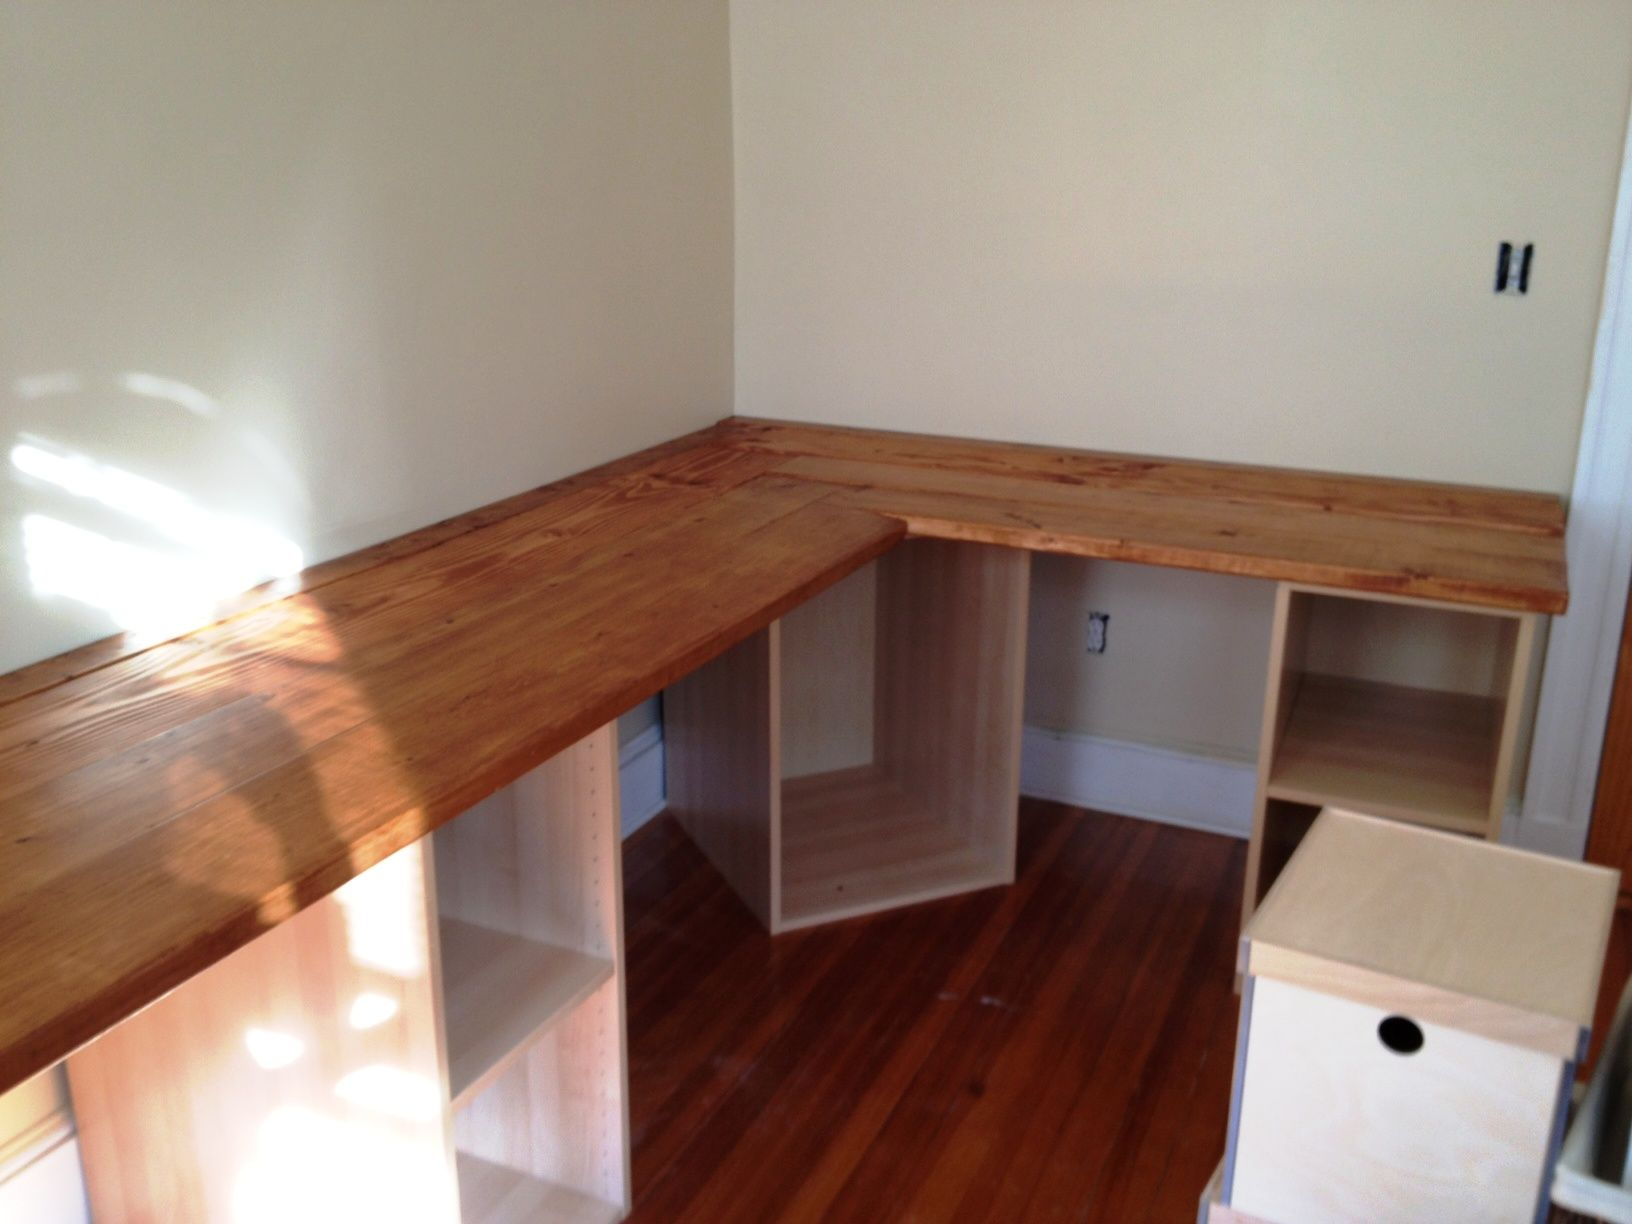 DIY Built-in Desk Stained and Assembled. Ideas for how to do the corner.